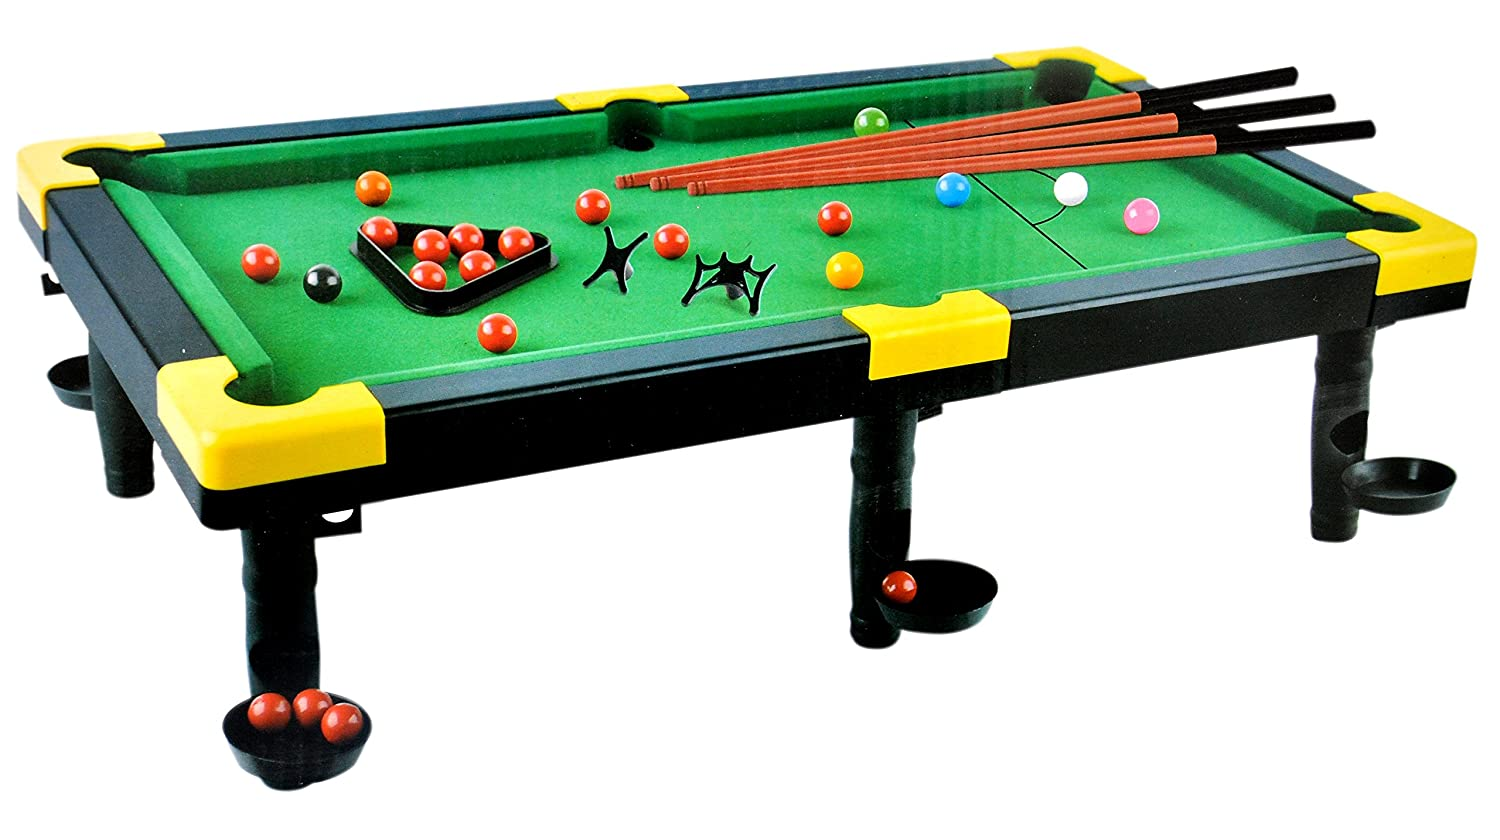 Buy Toyshine Portable Snooker Pool Table Toy with 3 Rods